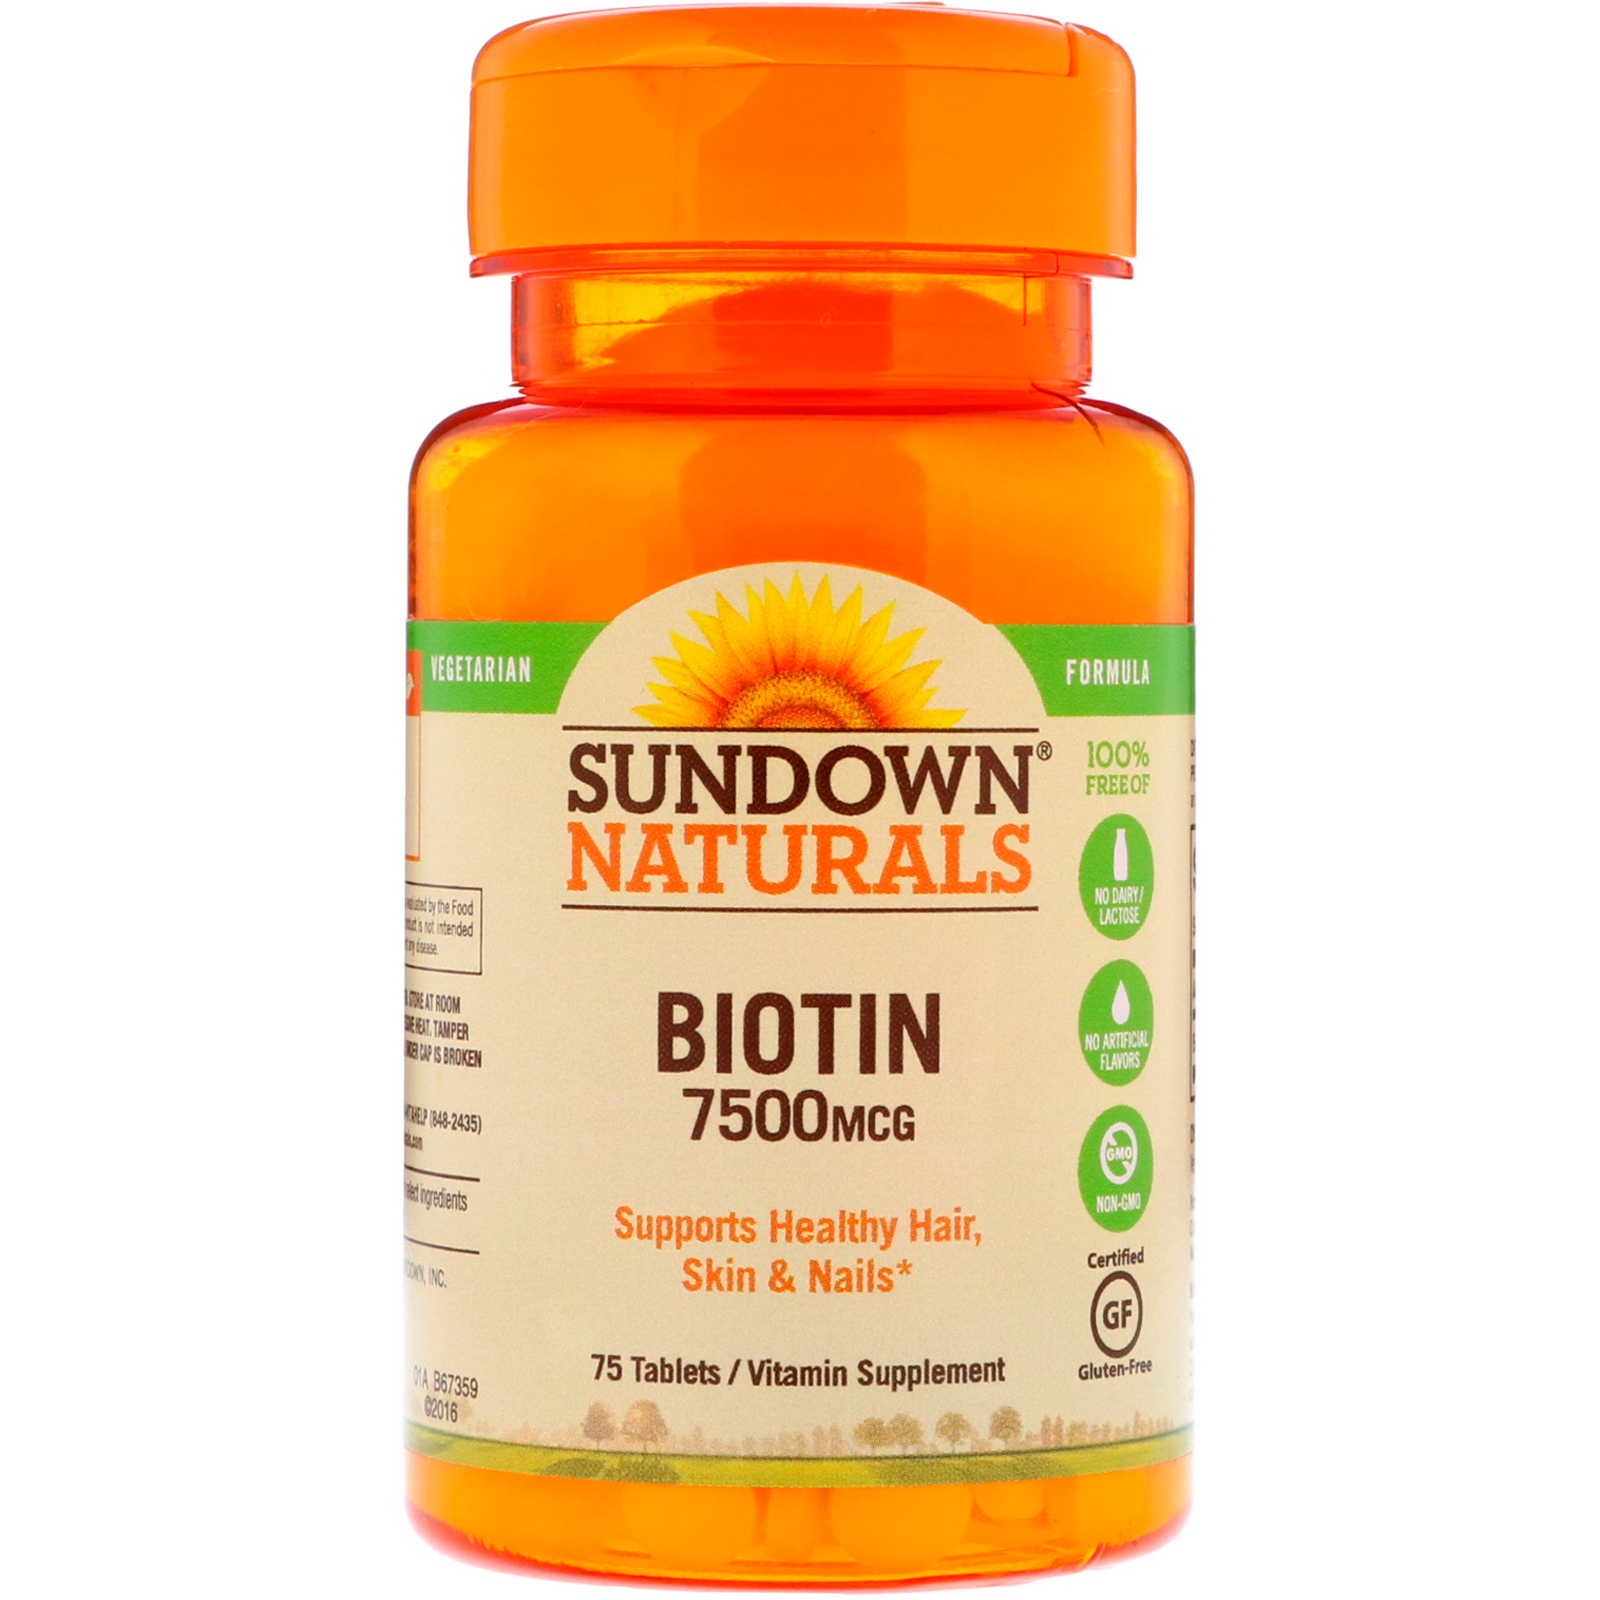 Sundown Naturals Biotin 7 500 Mcg 75 Tablets